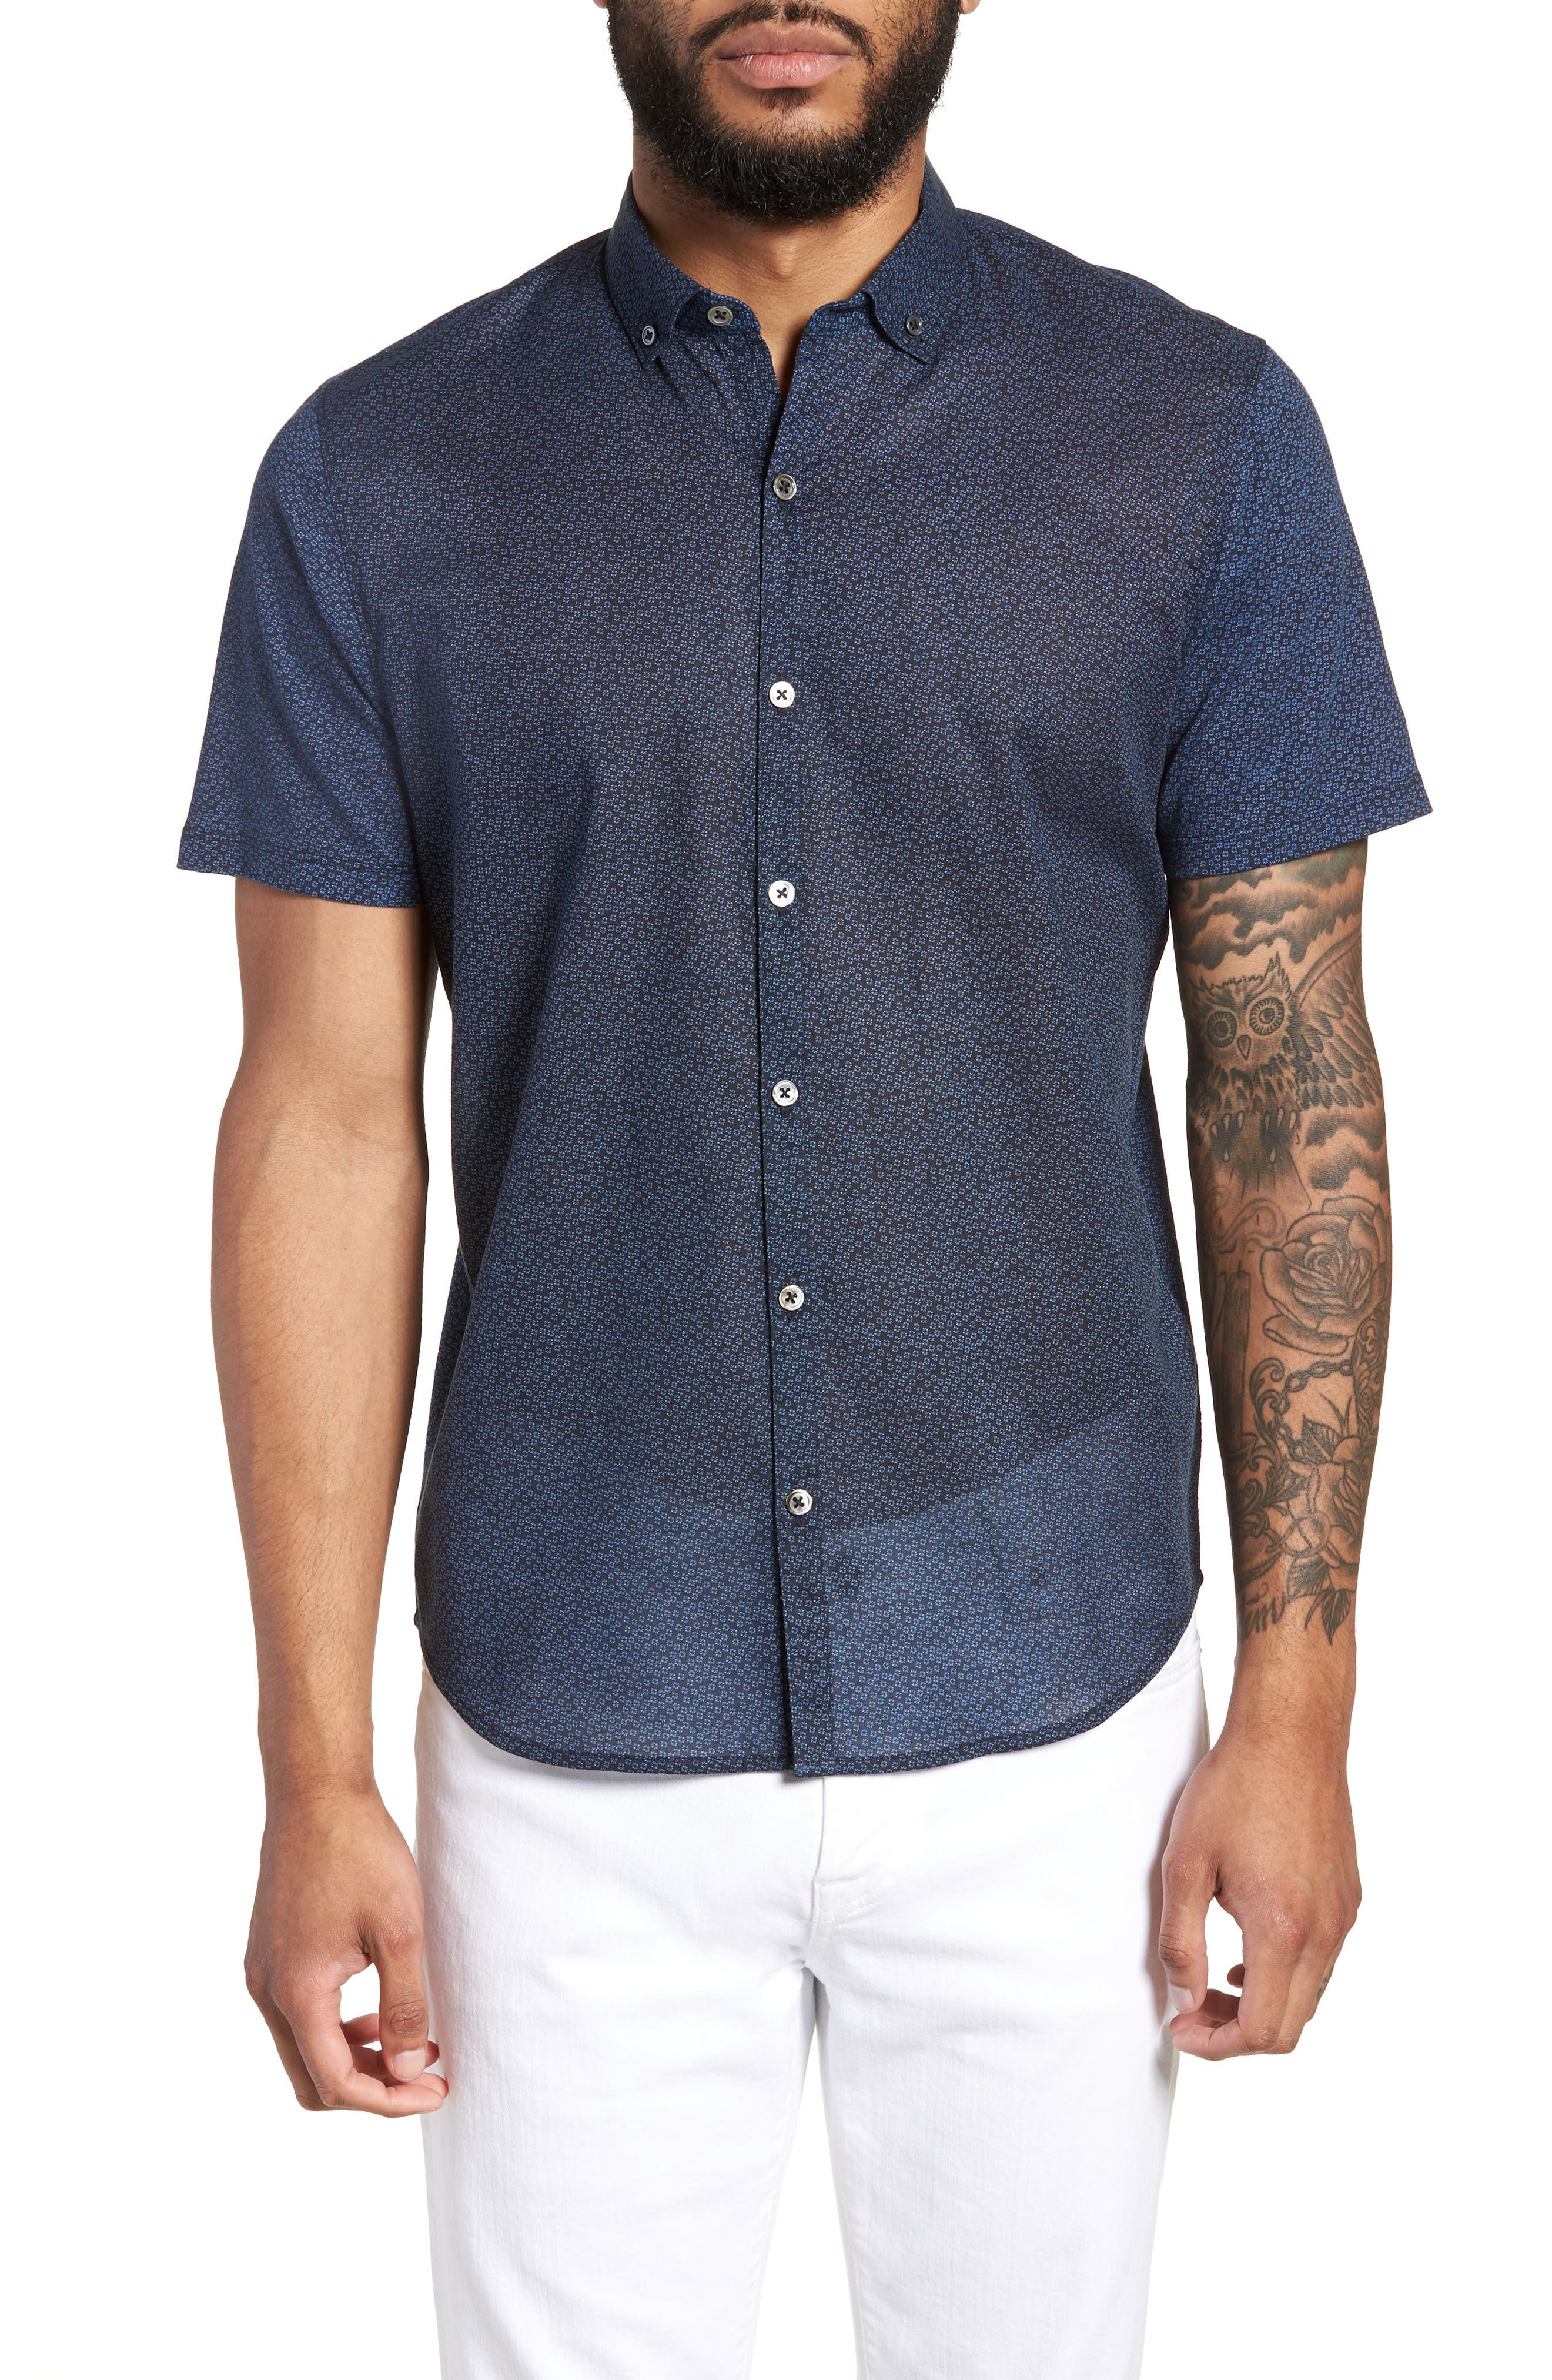 Main Image - Zachary Prell Clyde Slim Fit Sport Shirt